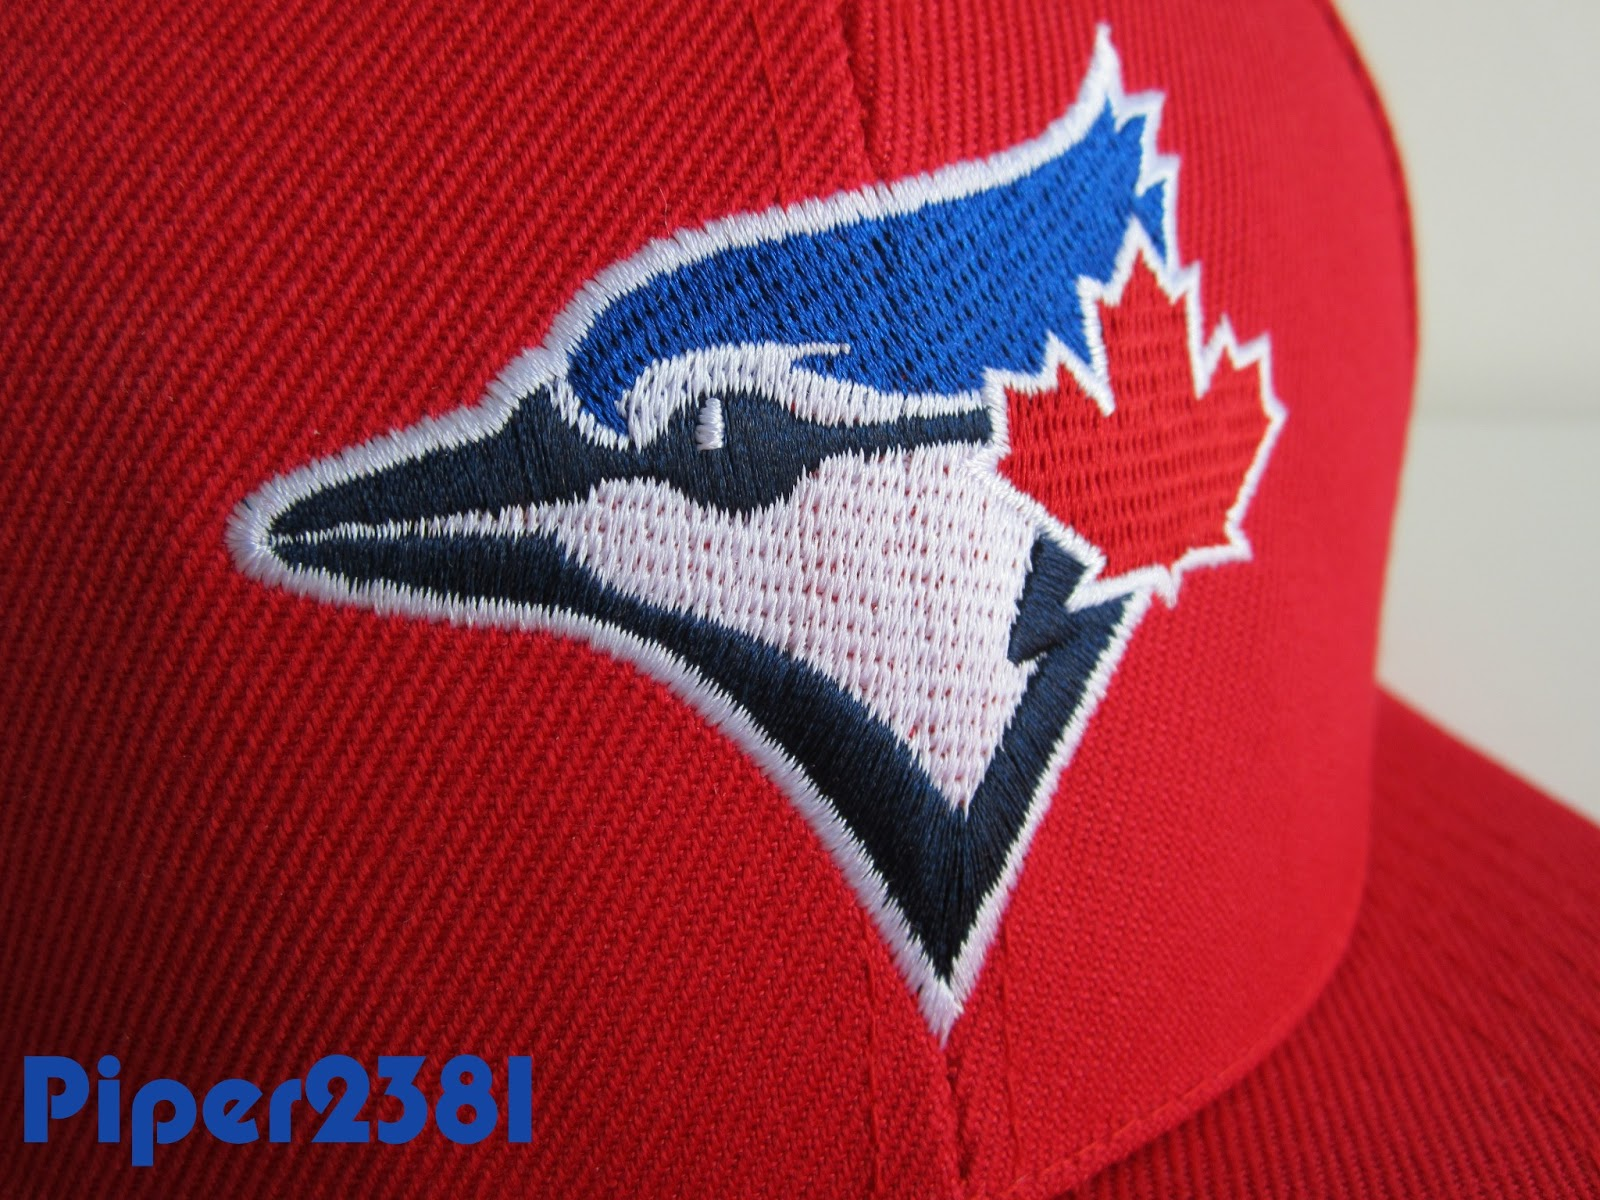 b9906de4d49 The hat colorway is red with the current Blue Jay logo on the front. On the  back you have Honda stitched in white